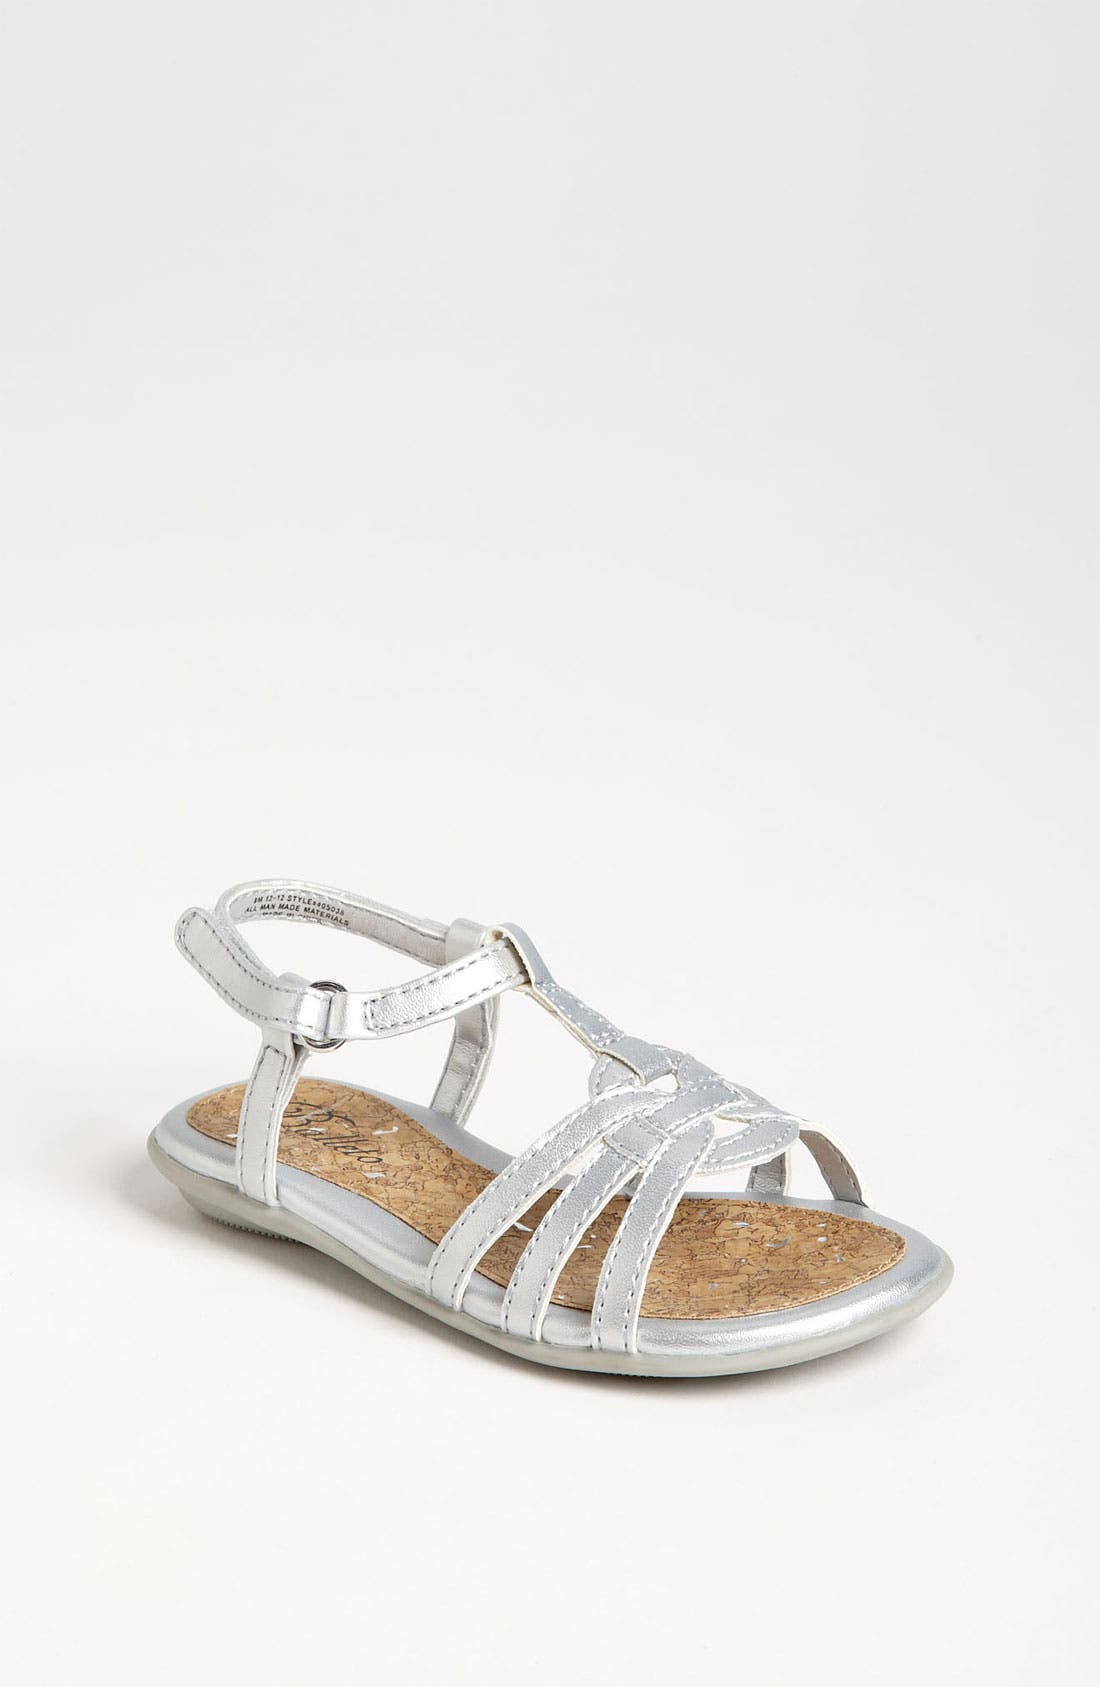 Alternate Image 1 Selected - Jumping Jacks 'Gabriella' Sandal (Walker, Toddler, Little Kid & Big Kid)